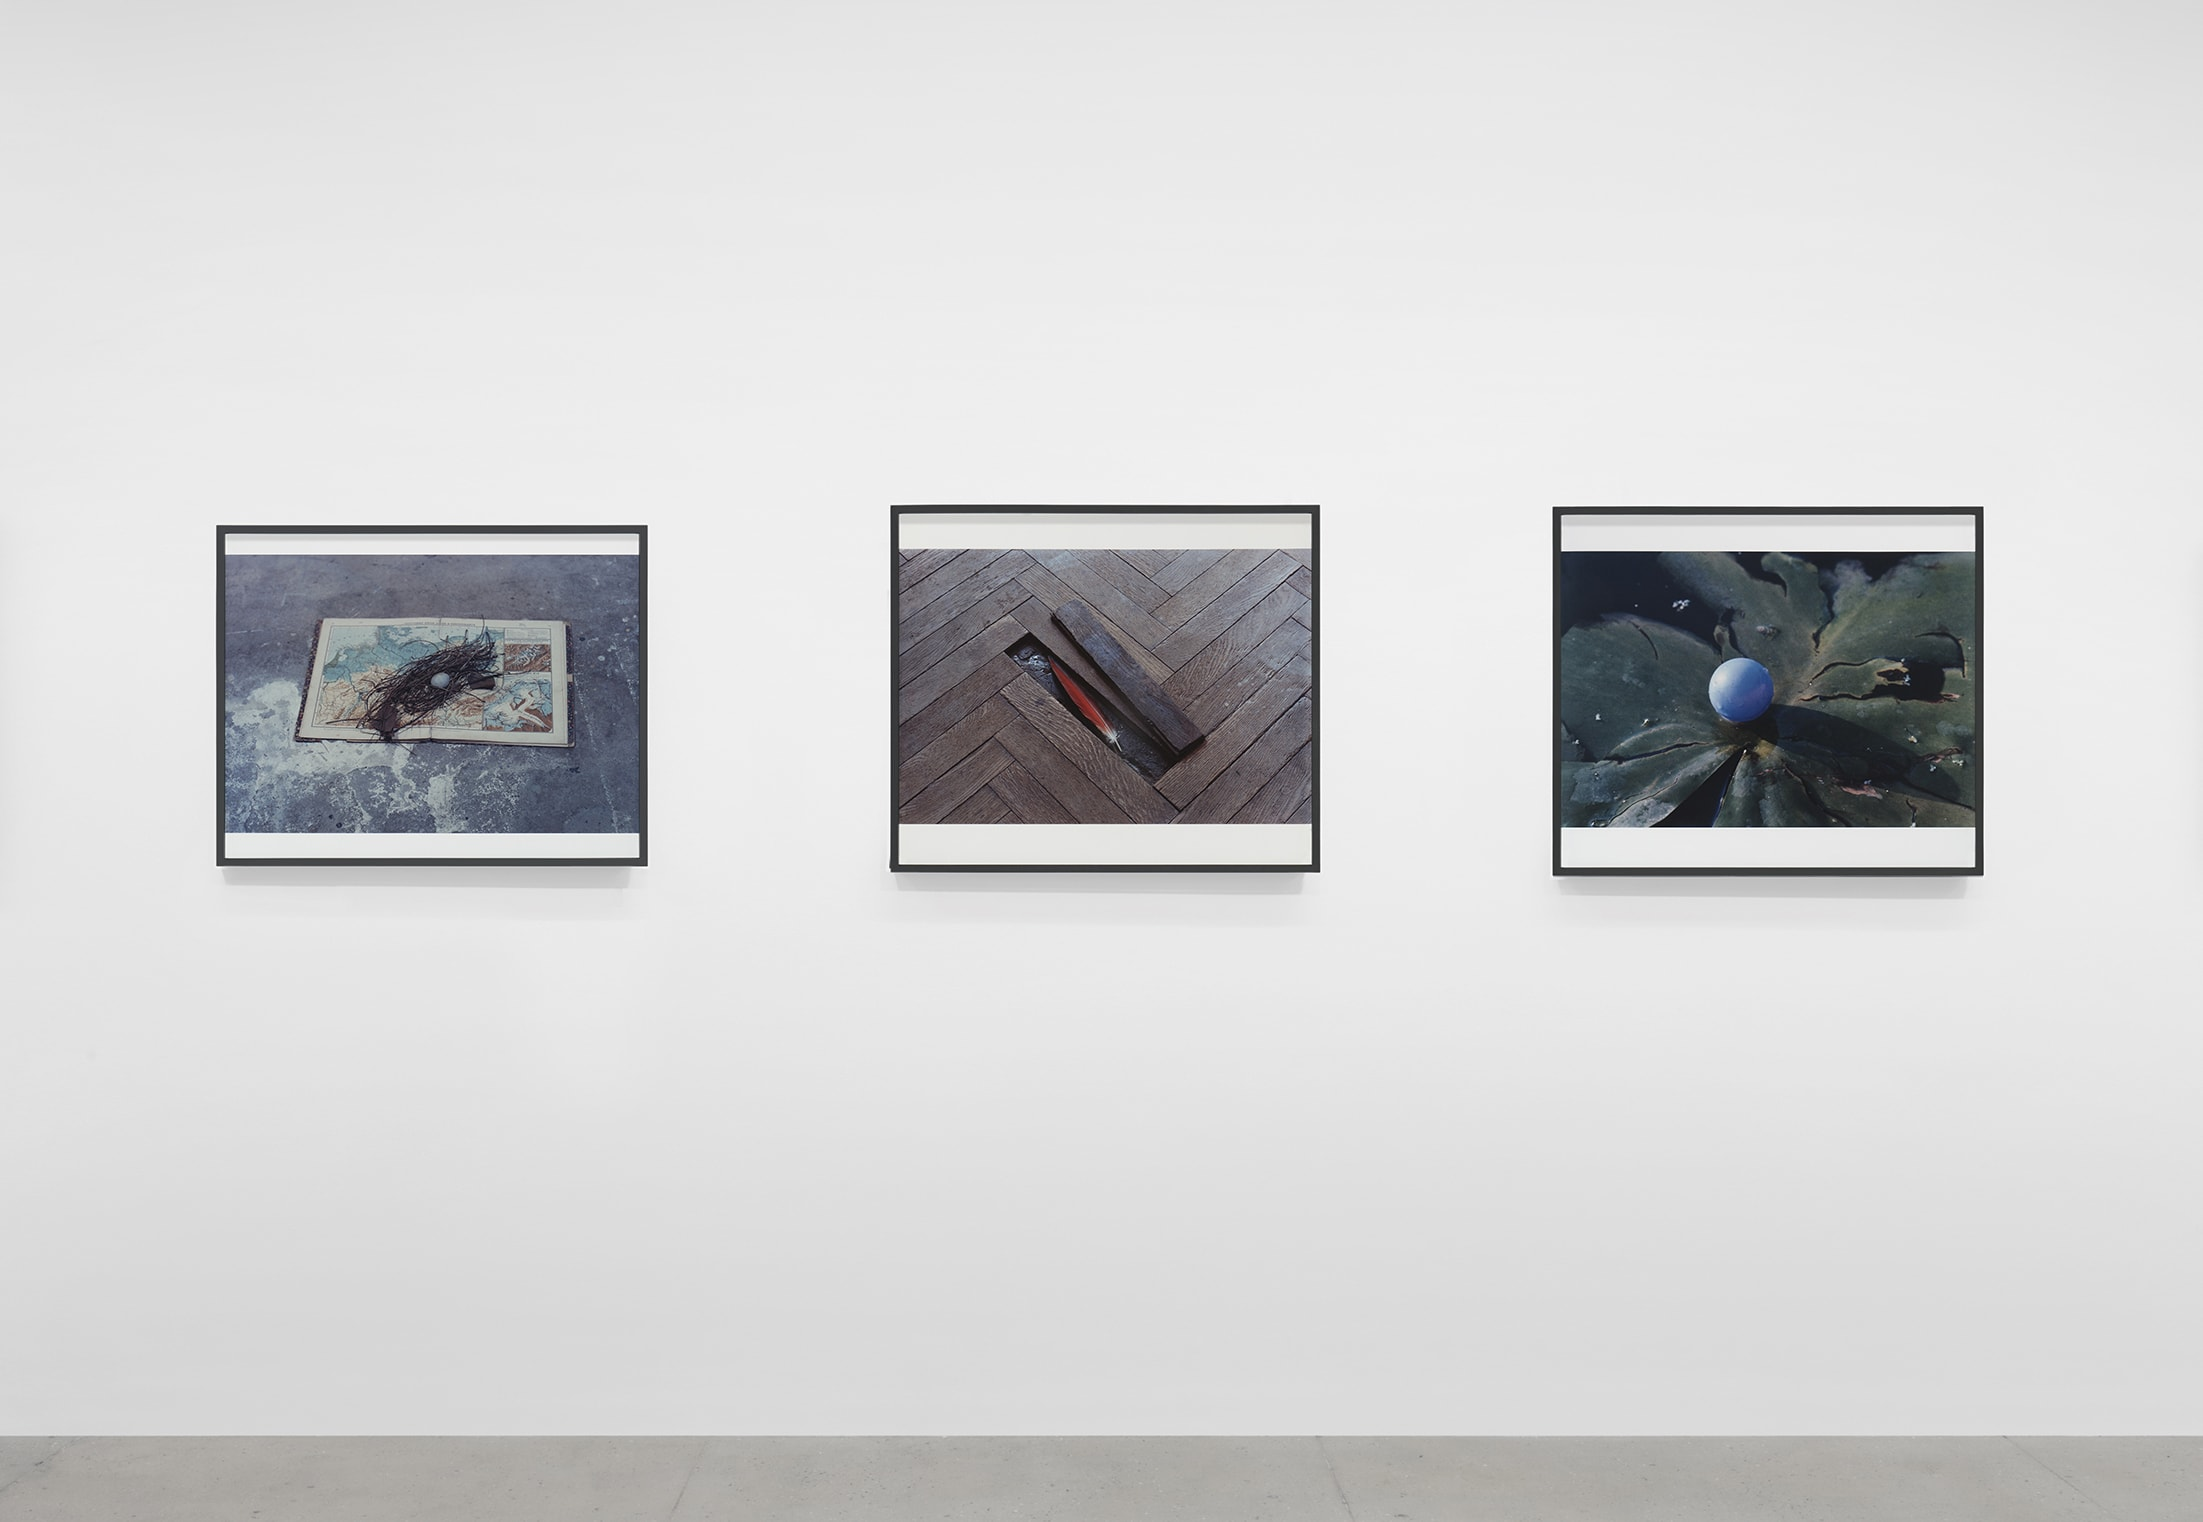 Installation view of Lothar Baumgarten's exhibition. Image contains 3 photographs.